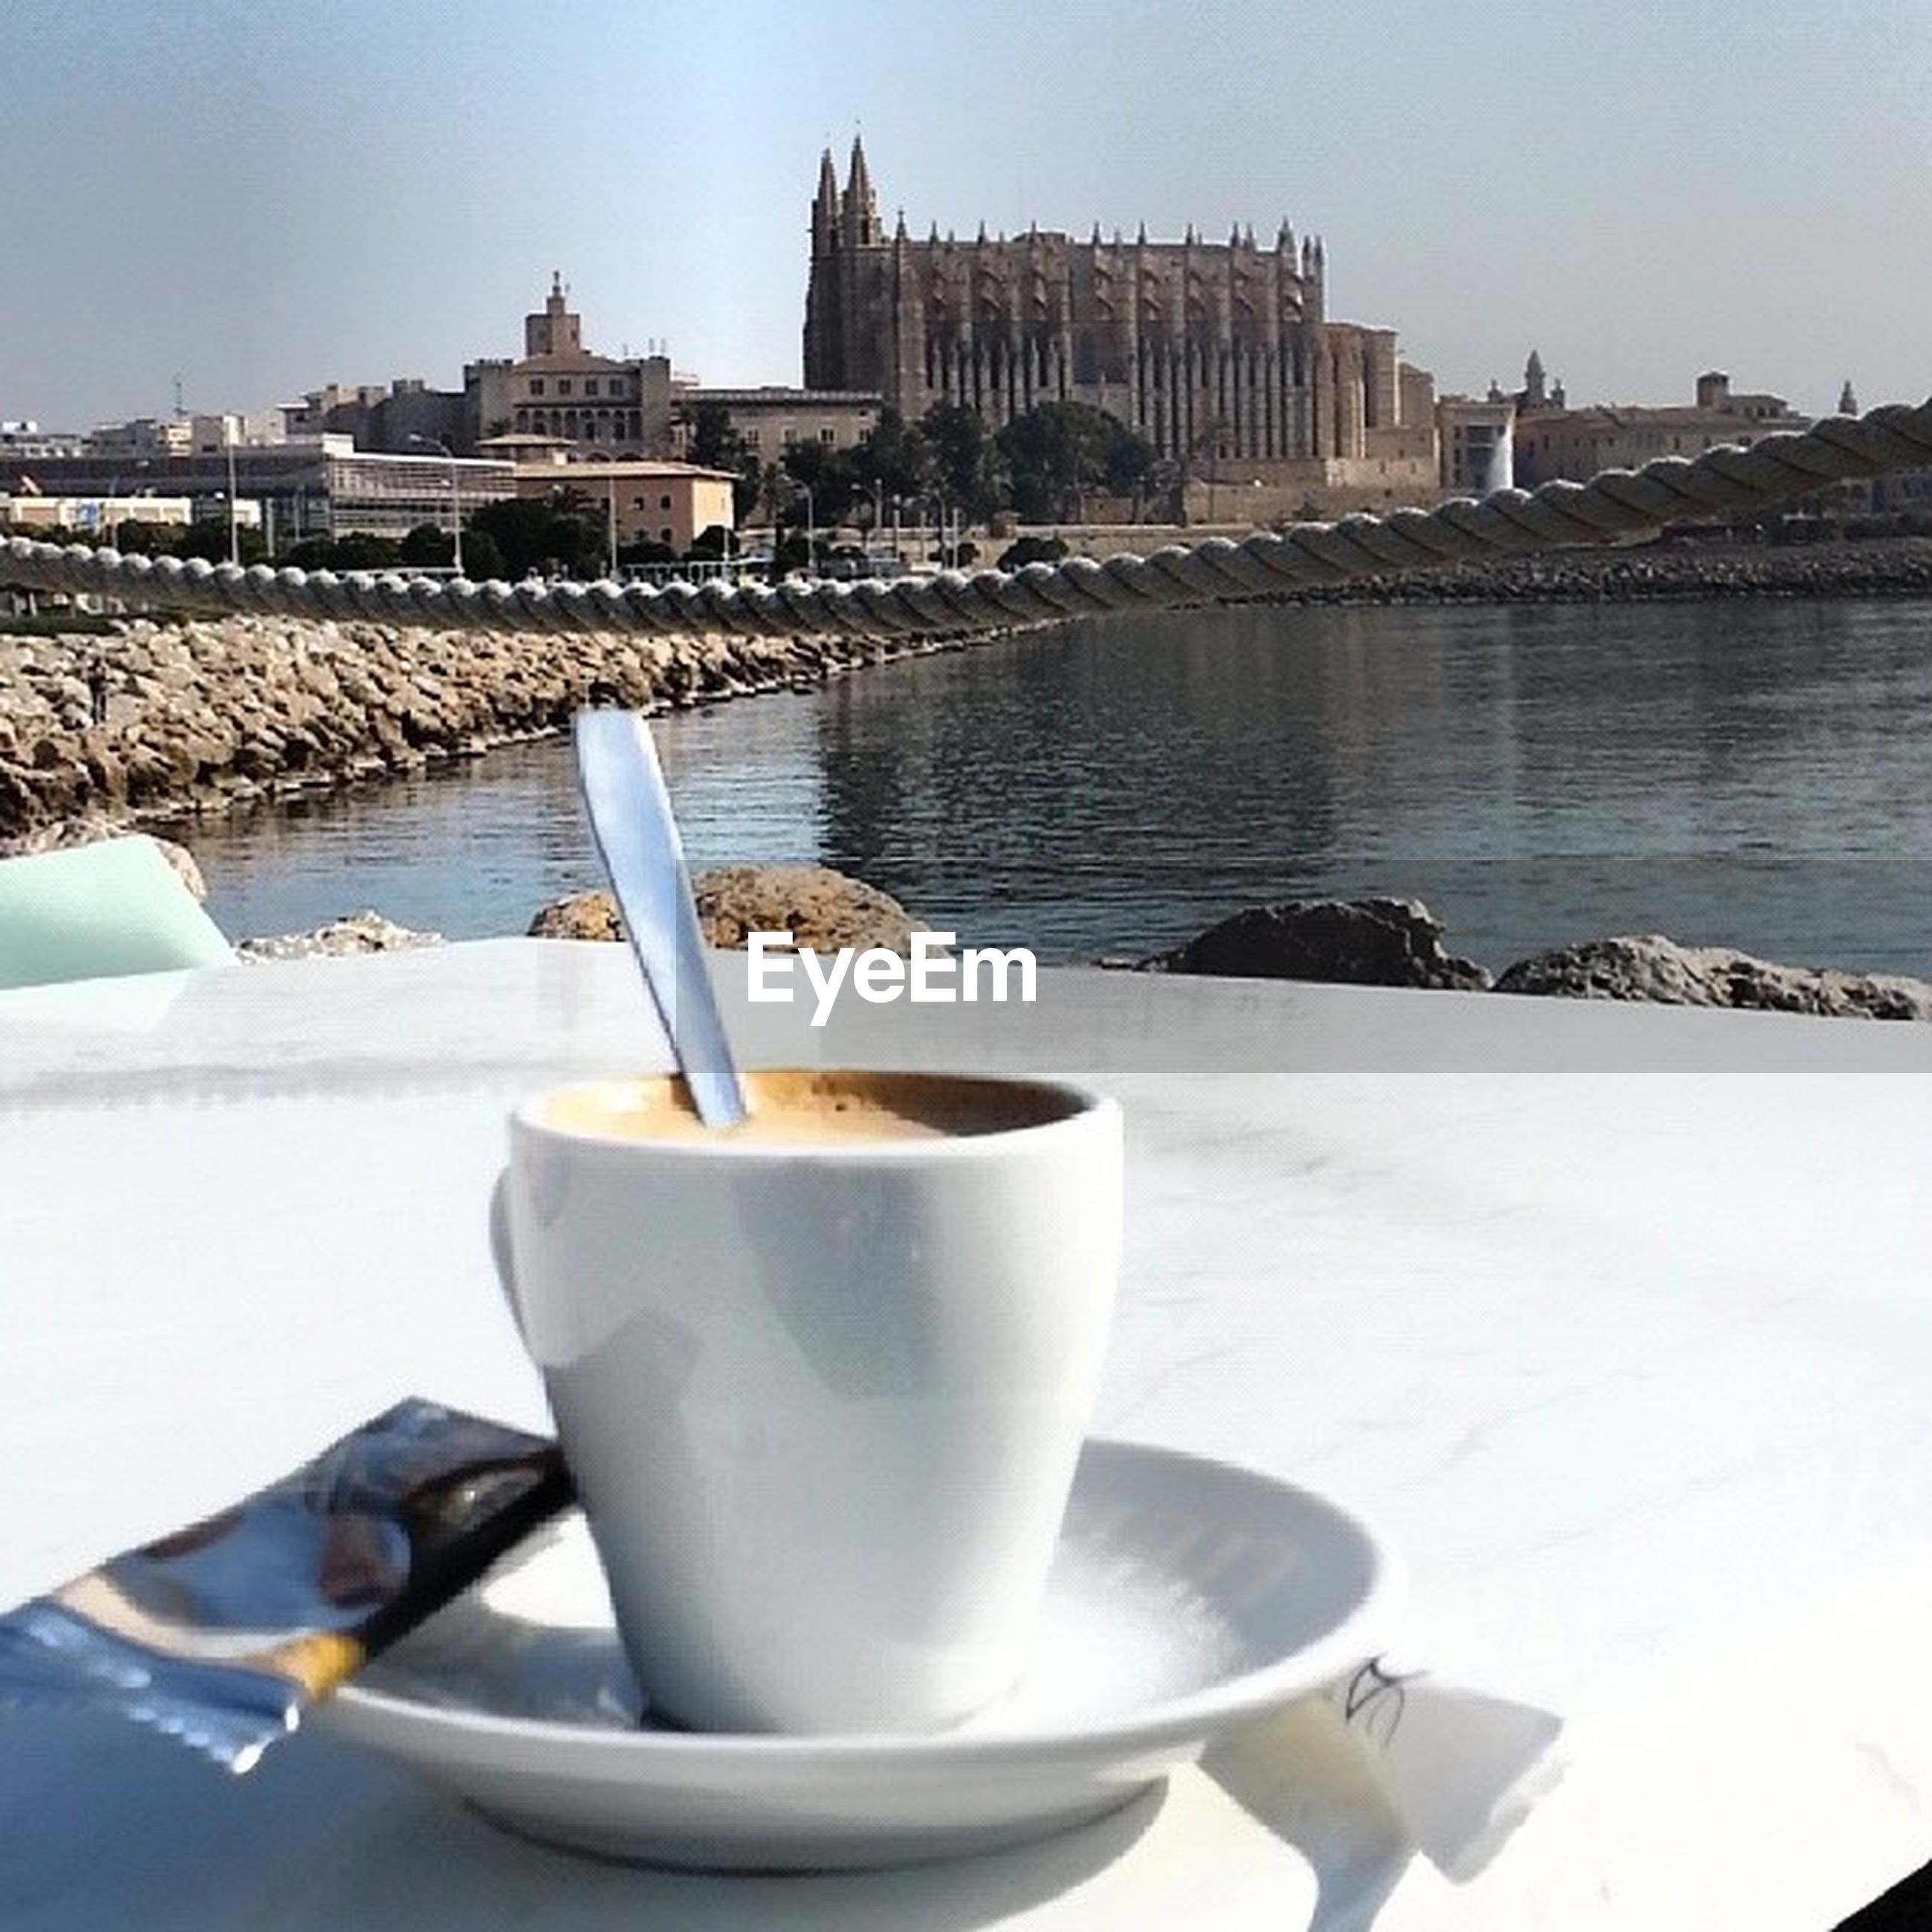 food and drink, drink, refreshment, coffee cup, water, architecture, table, built structure, saucer, building exterior, coffee - drink, close-up, white color, sky, spoon, day, sunlight, no people, cup, outdoors